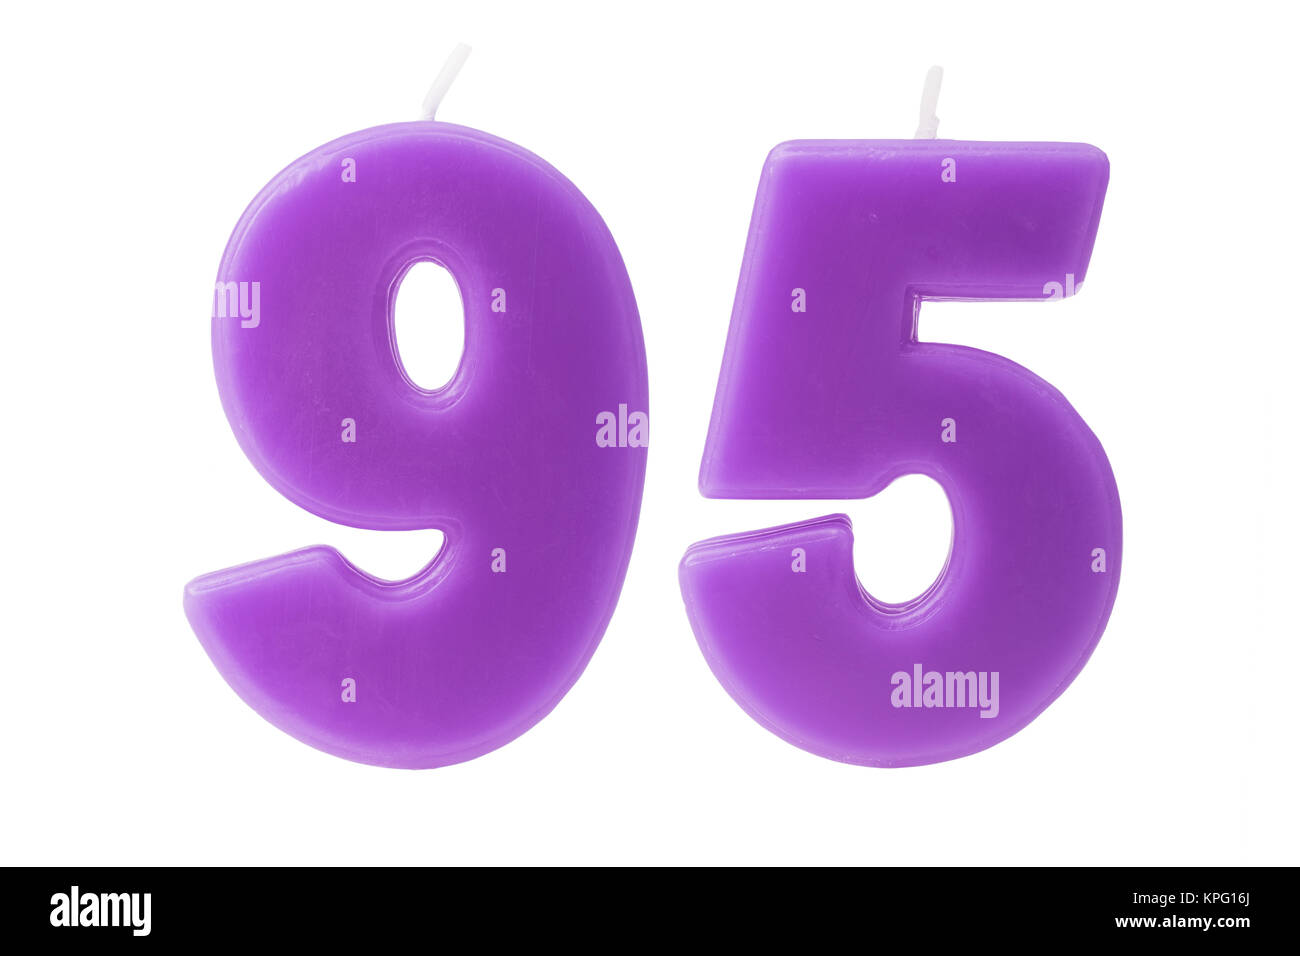 95th birthday candles isolated - Stock Image